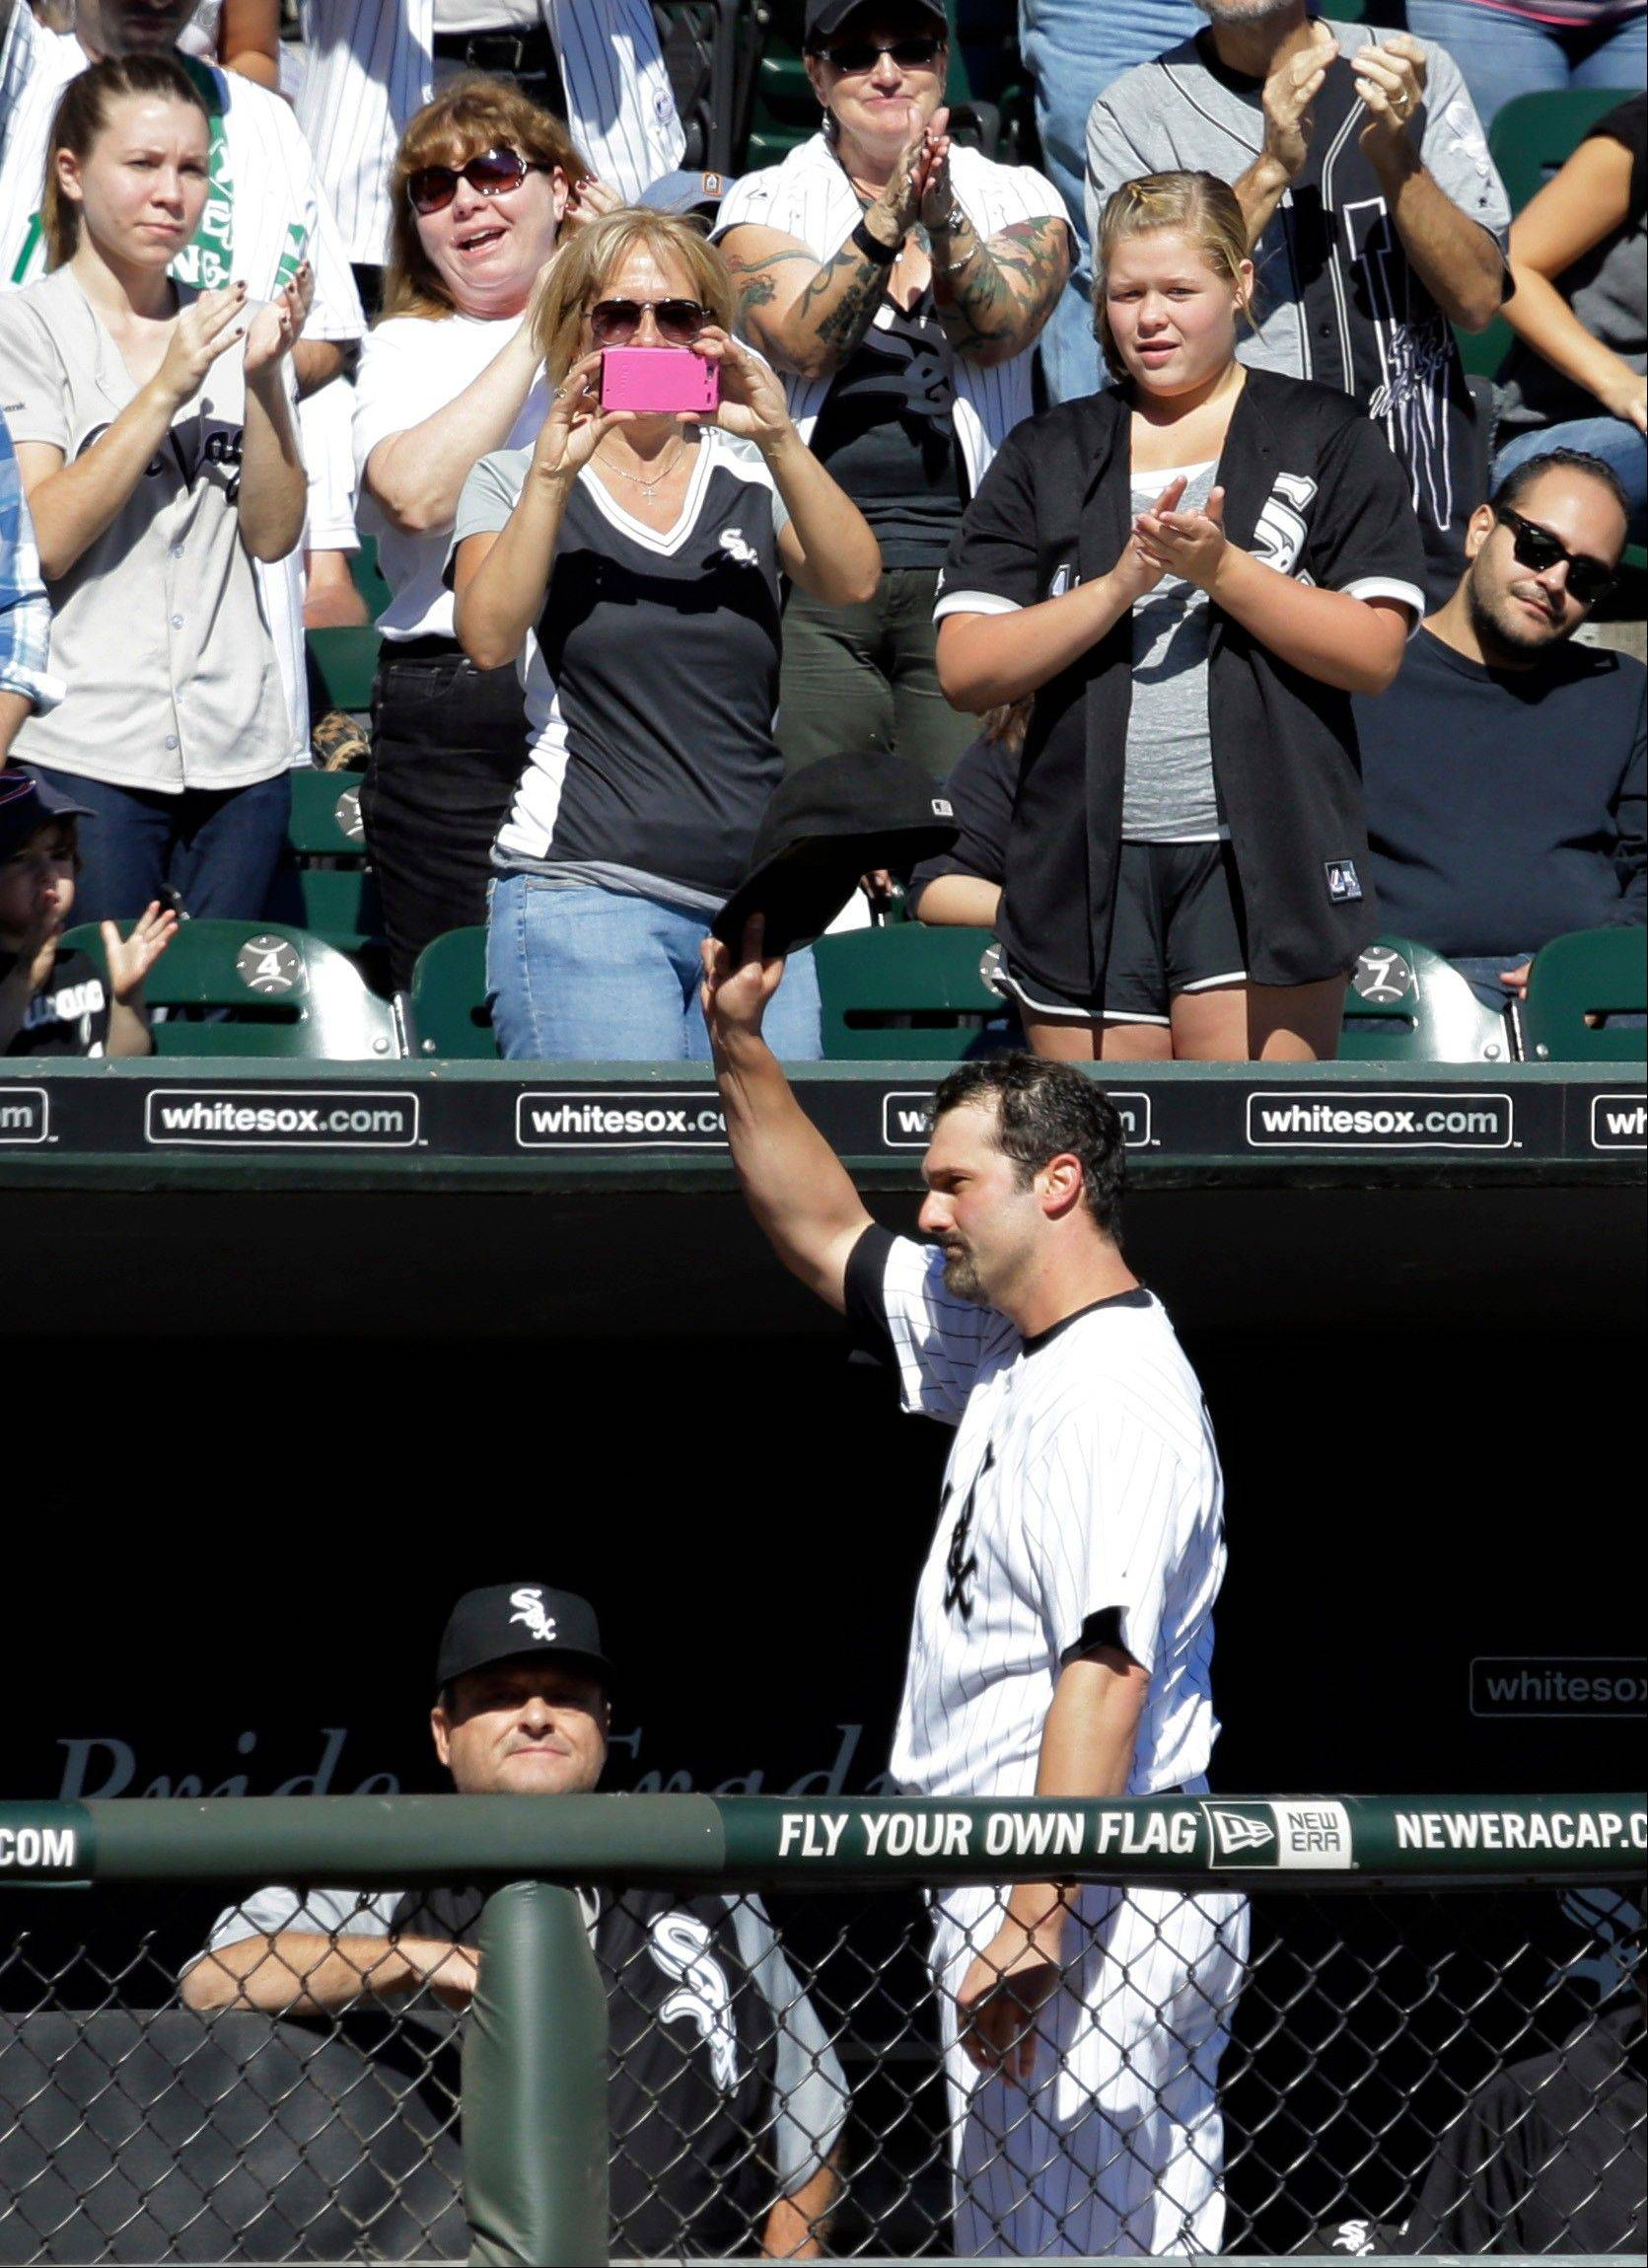 Did Paul Konerko wave his final goodbyes to the White Sox faithful this summer? General manager Rick Hahn says the team has a spot for him in 2014 if he wants it.